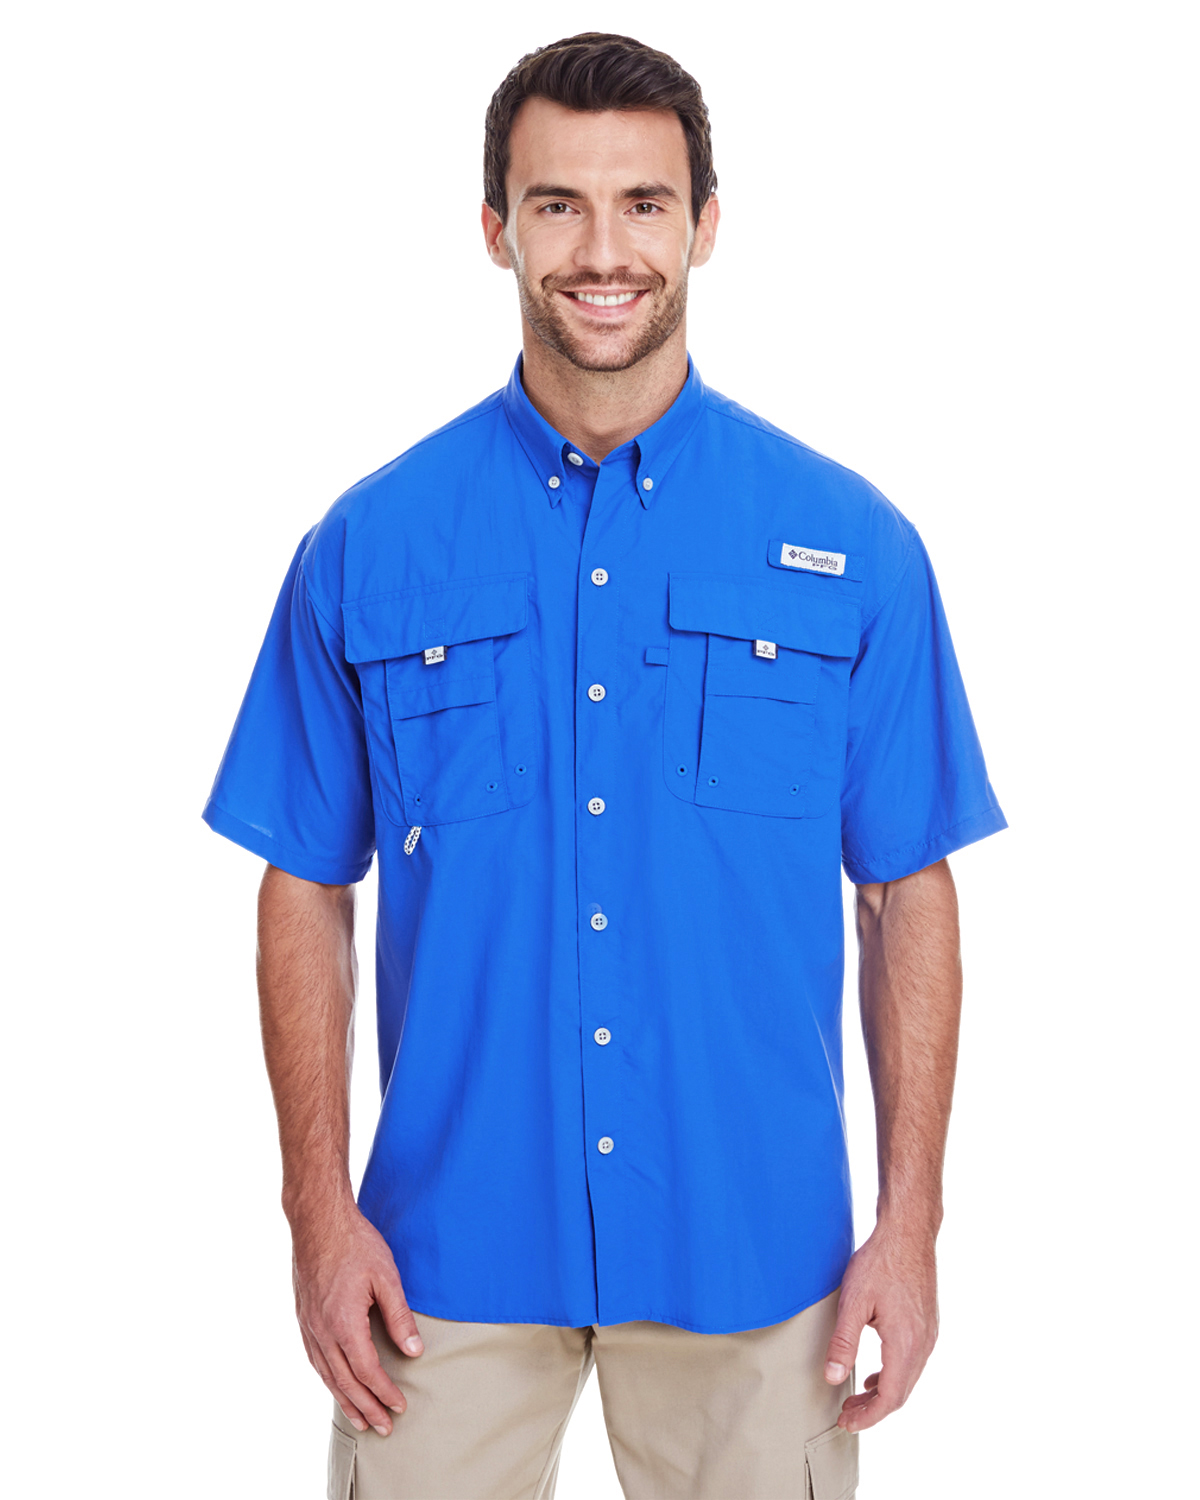 CLUB-7047 Columbia Men's Bahama™ II Short-Sleeve Shirt